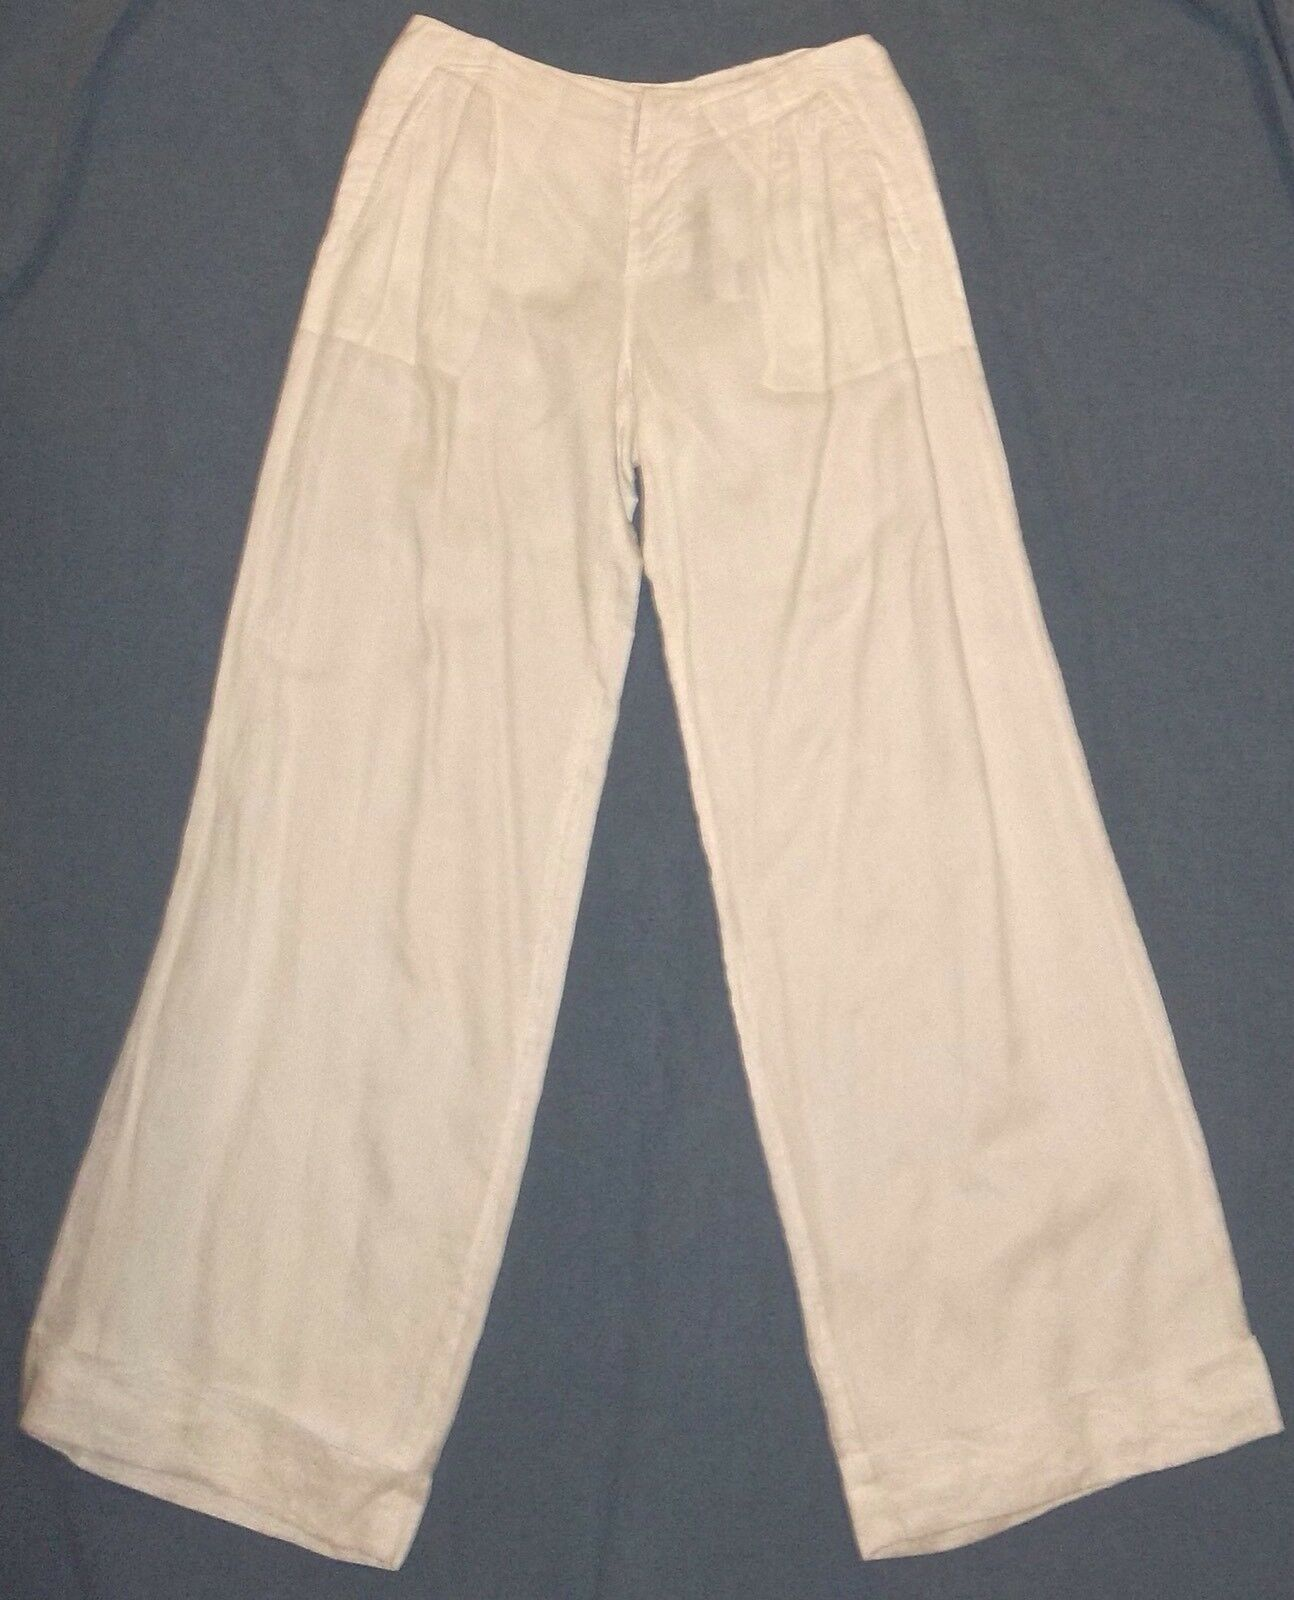 Jean Paul Gaultier Haute tailored wide cuffed legs White linen pants women's US6